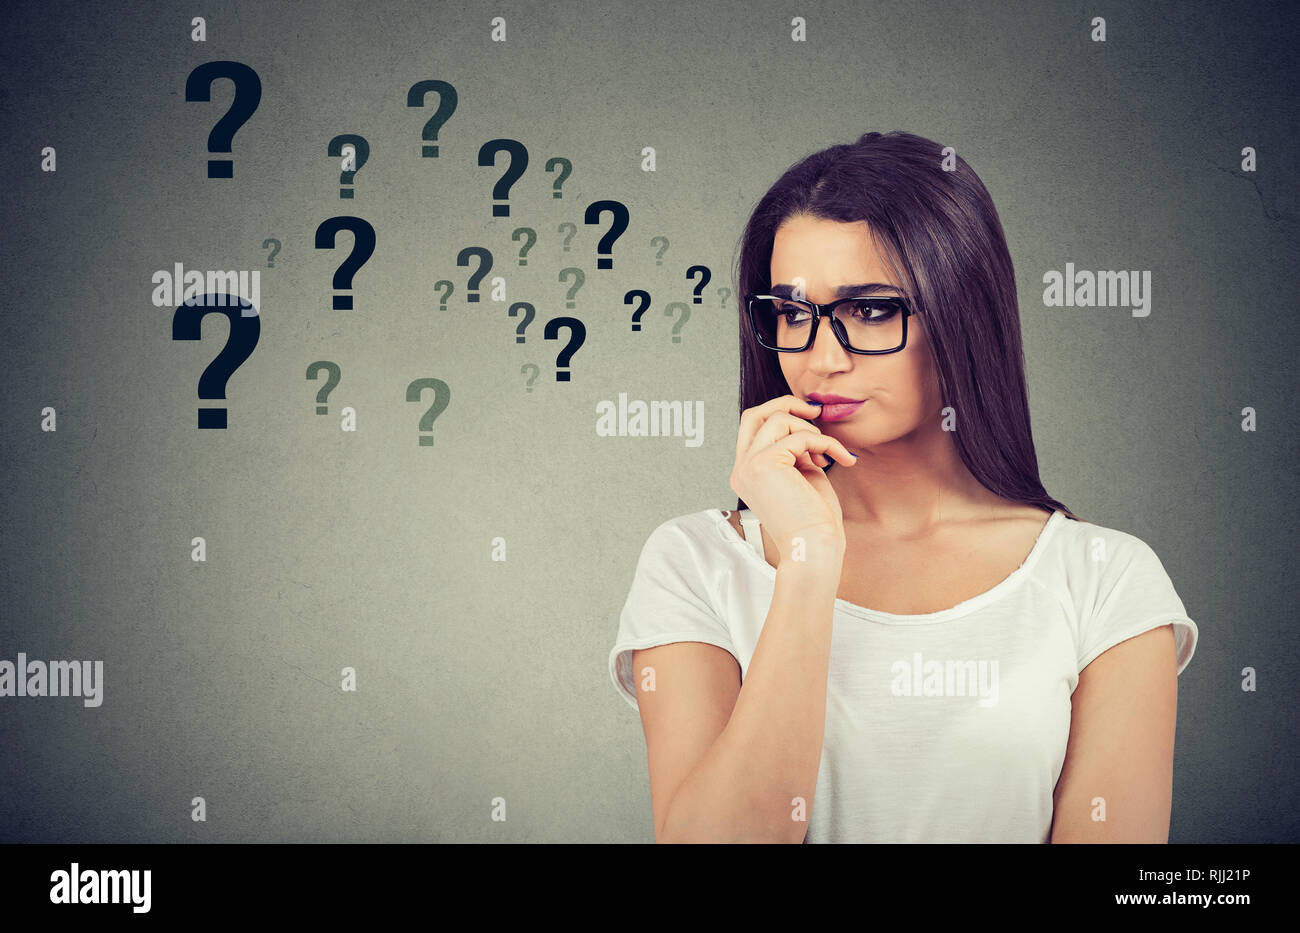 Portrait confused thinking woman bewildered seeks a solution looking preoccupied has many questions isolated on gray wall background - Stock Image